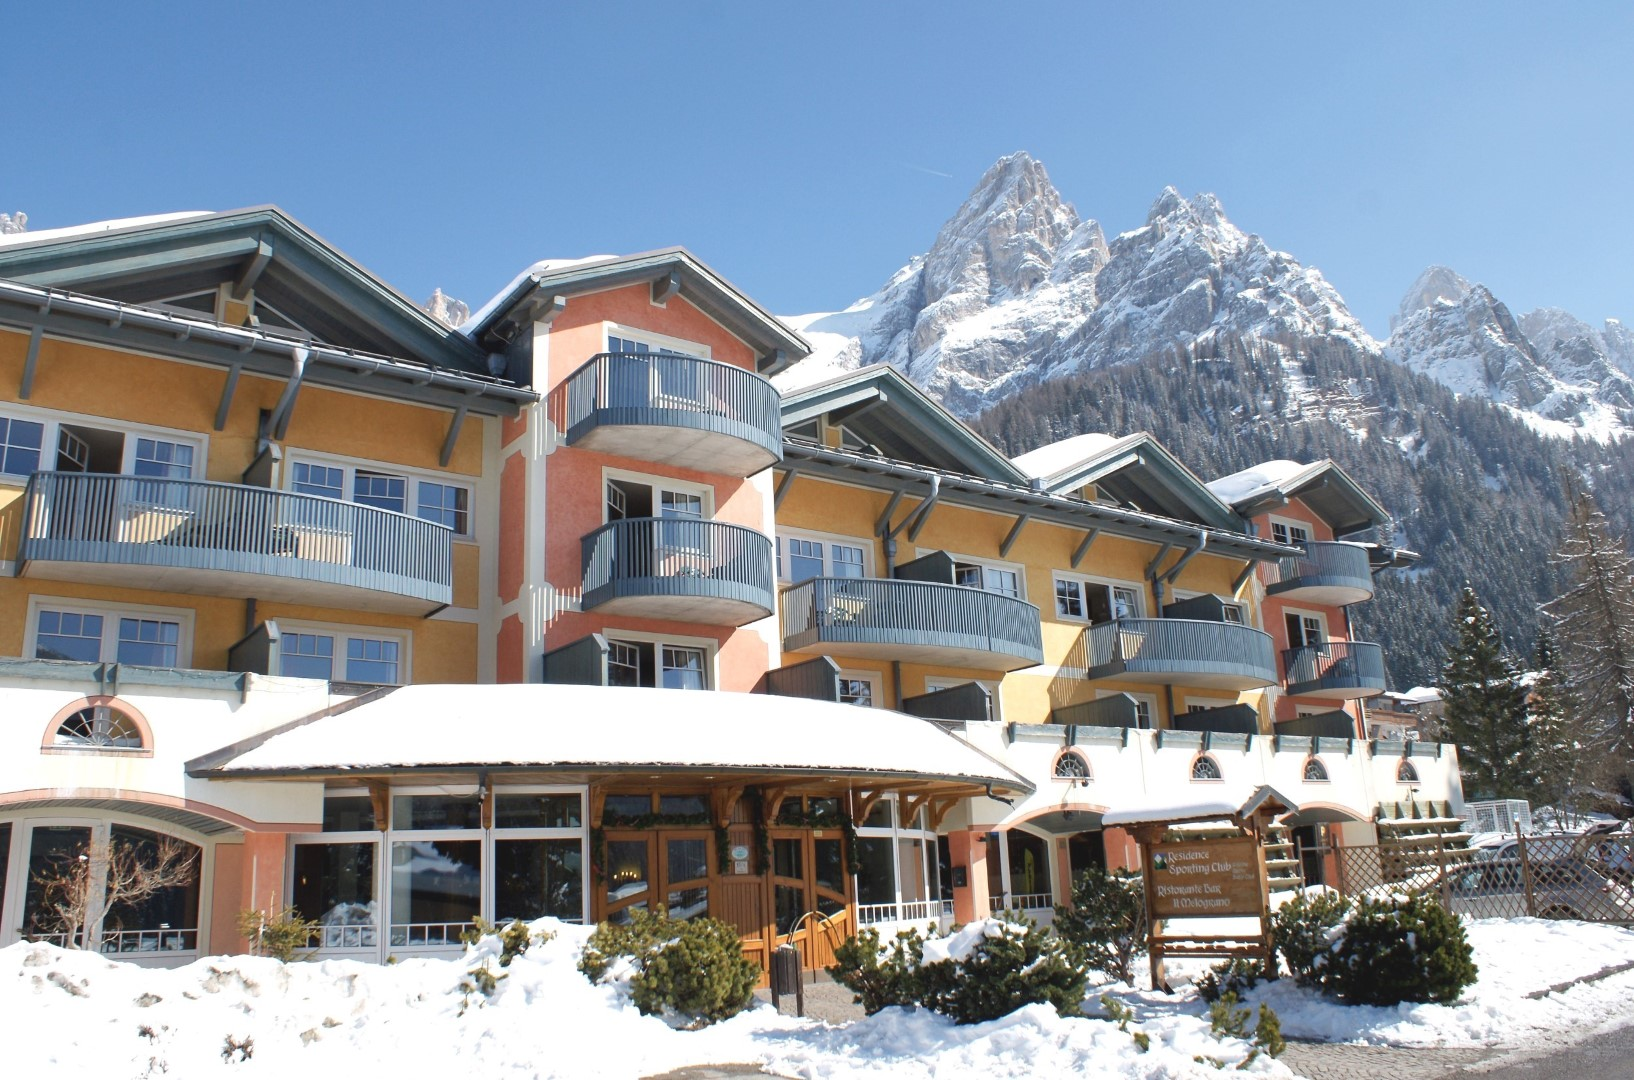 Appartementhaus Sporting Club Residence in San Martino di Castrozza, Appartementhaus Sporting Club Residence / Italien